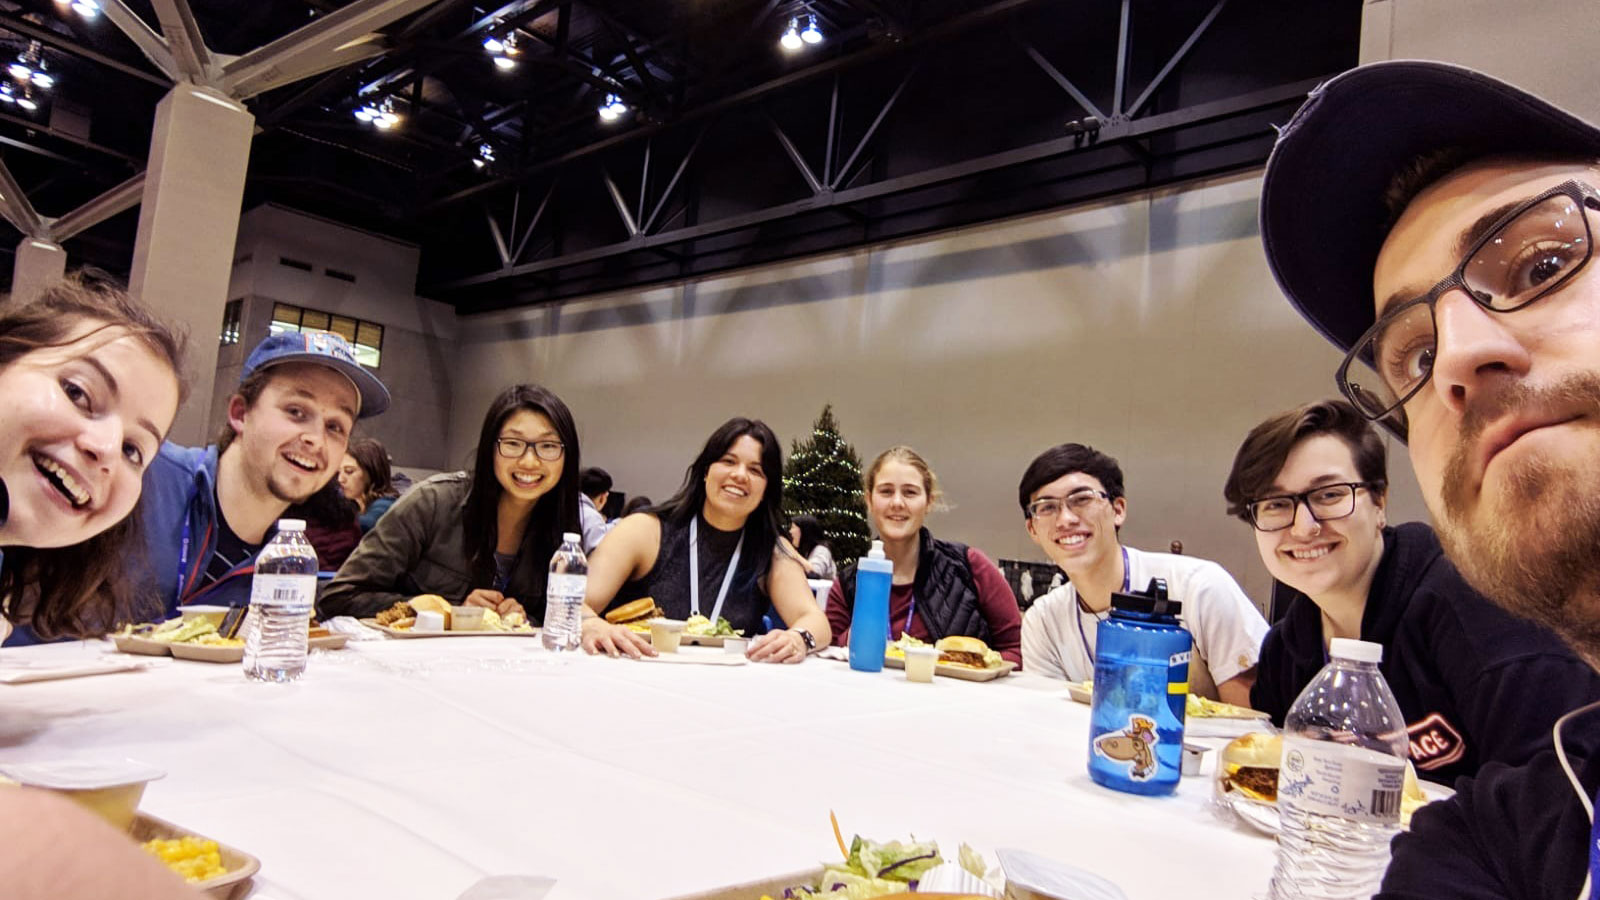 Emily Carr students gathered at a table